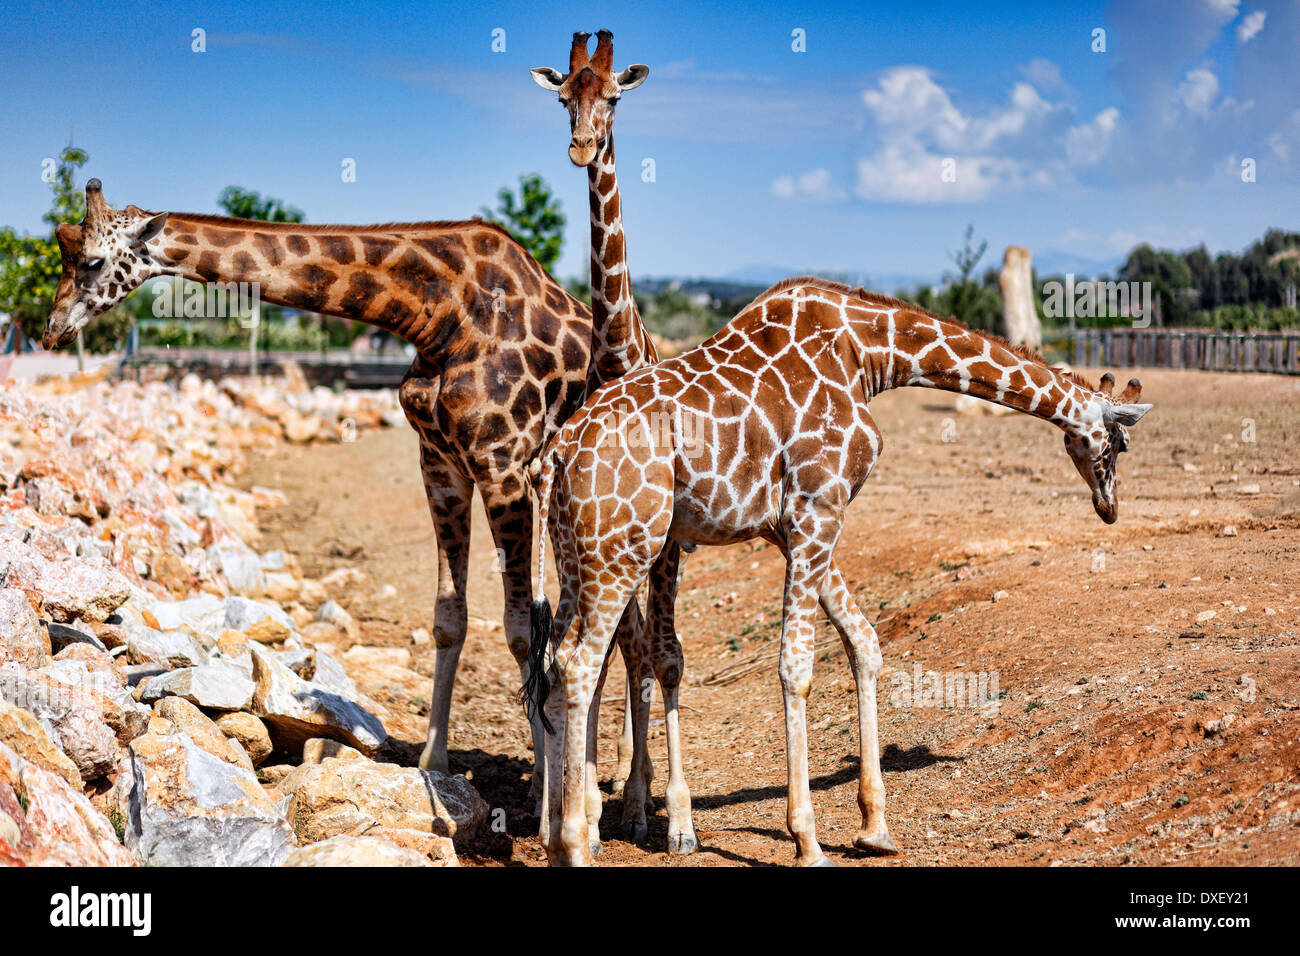 Giraffes in the zoo - Stock Image